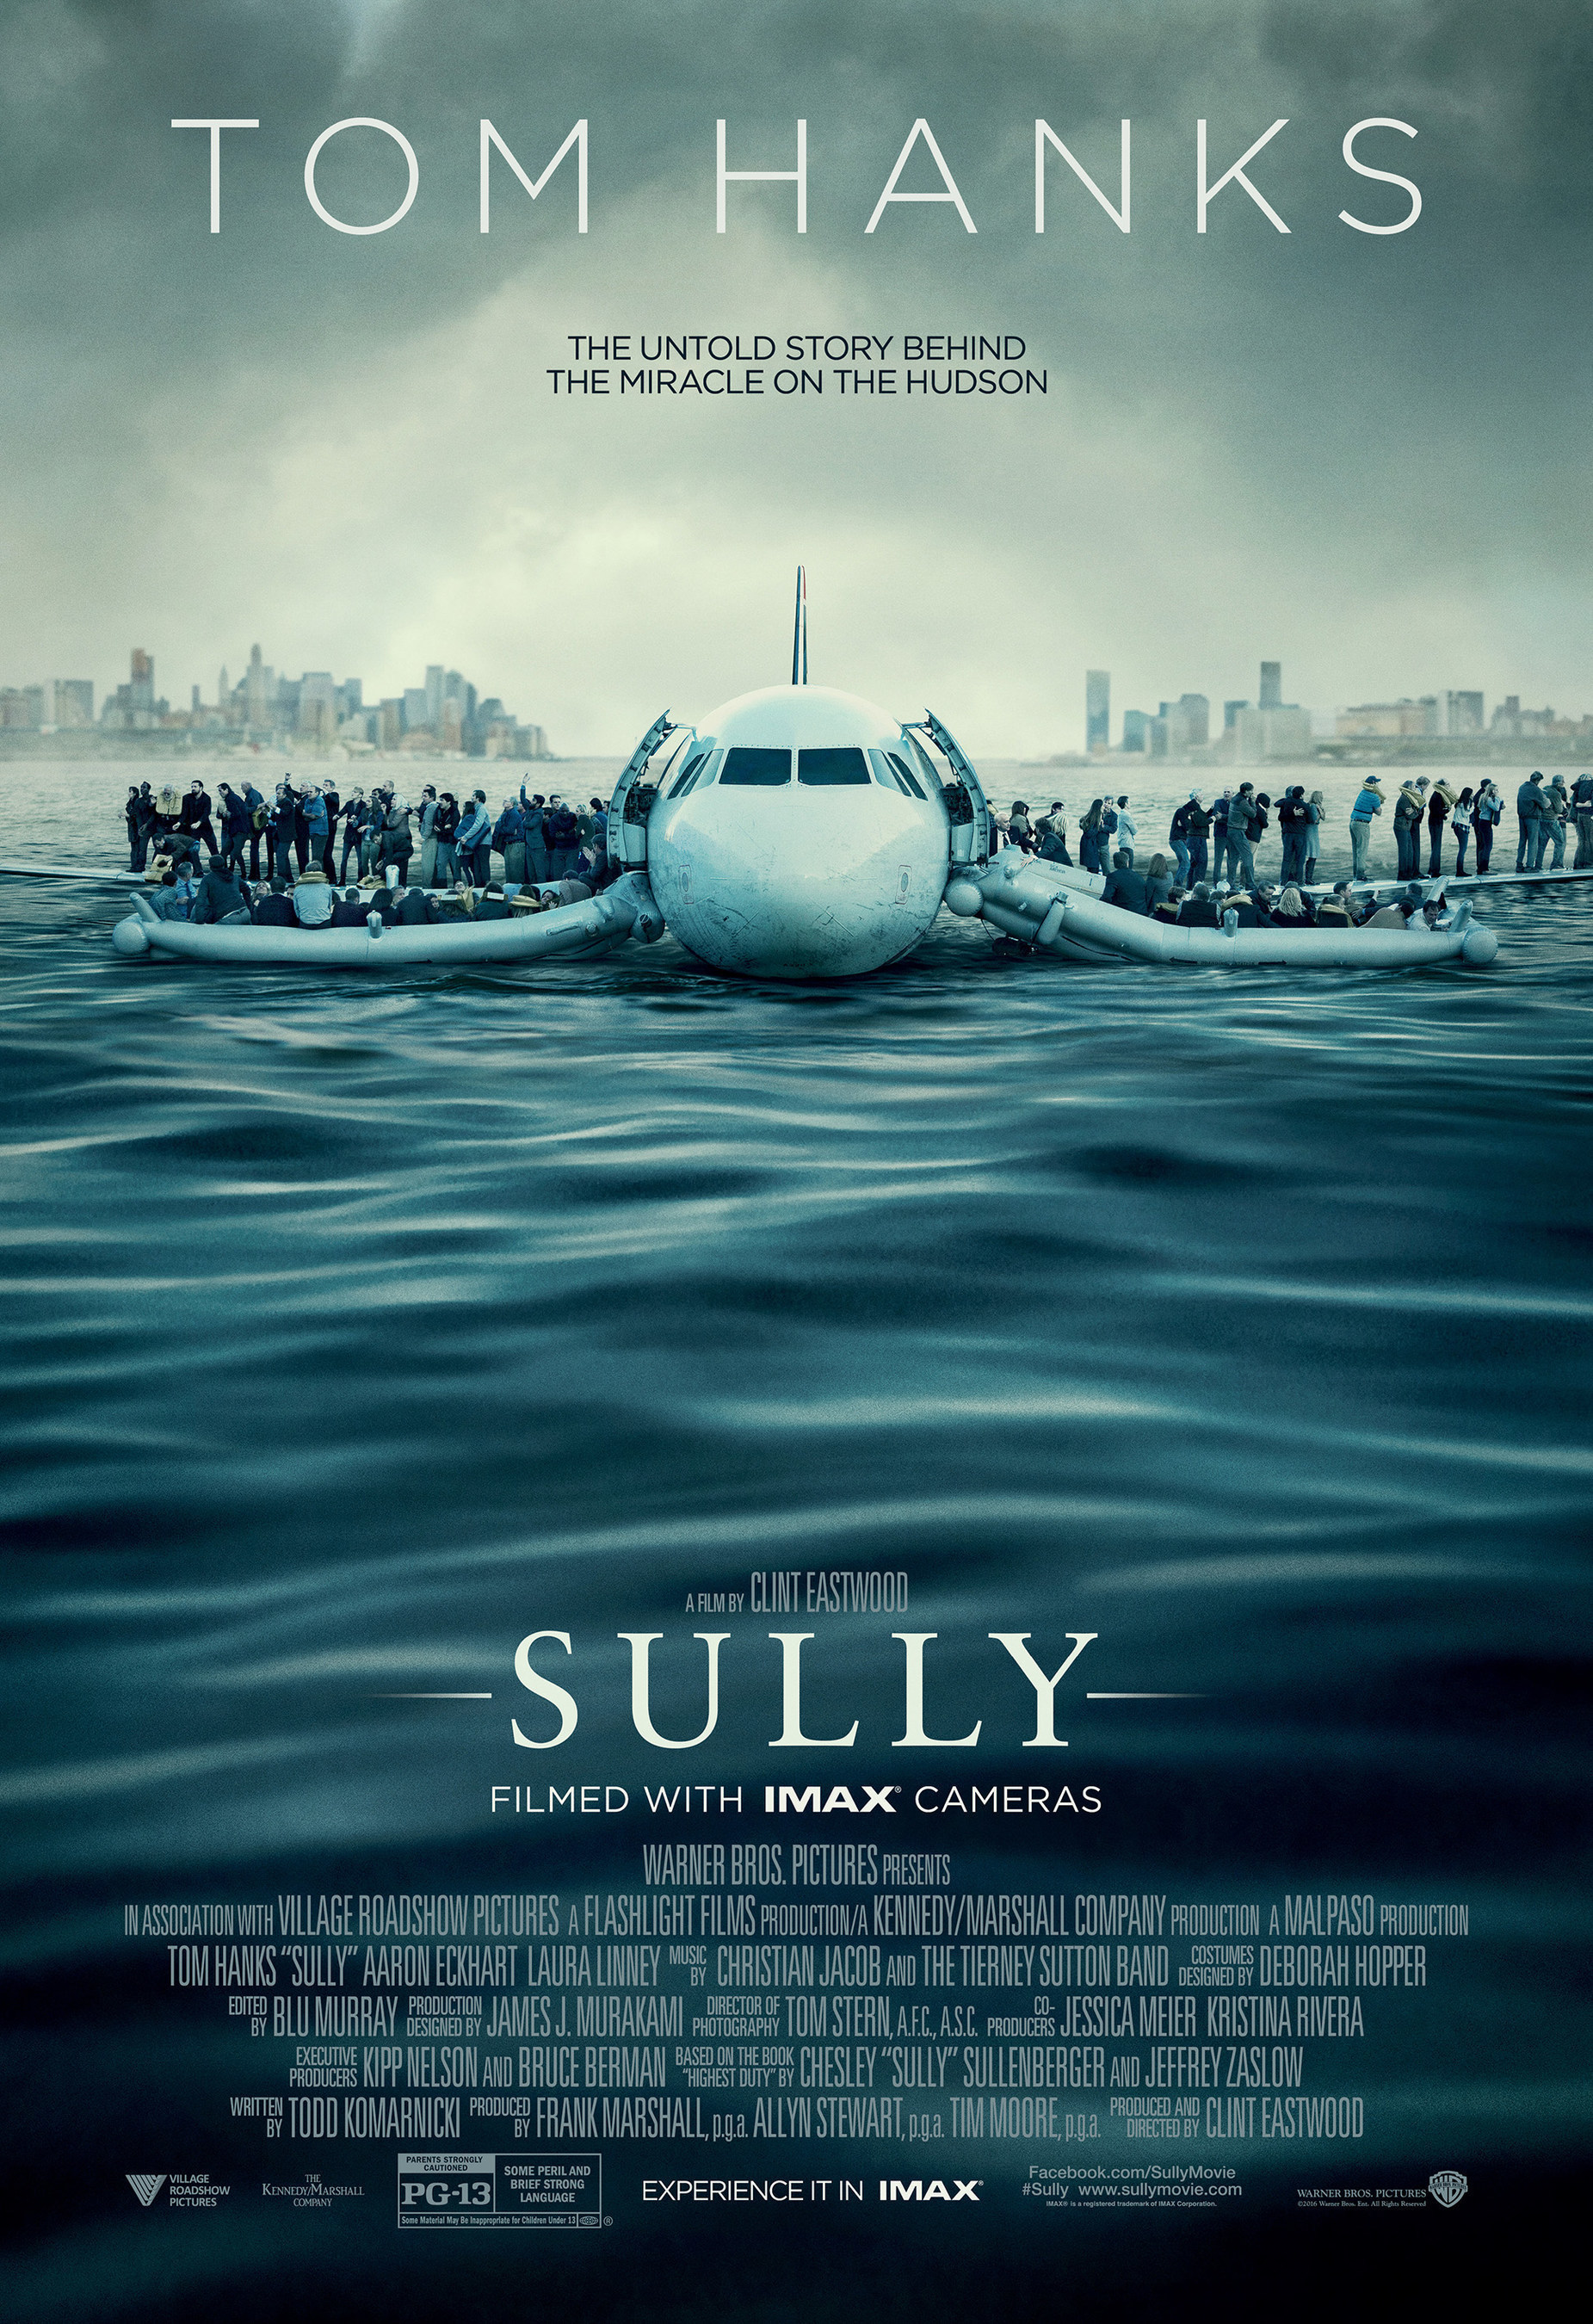 IMAX Offers Exclusive, Free Veterans Screening of Sully on Veterans Day in New York City